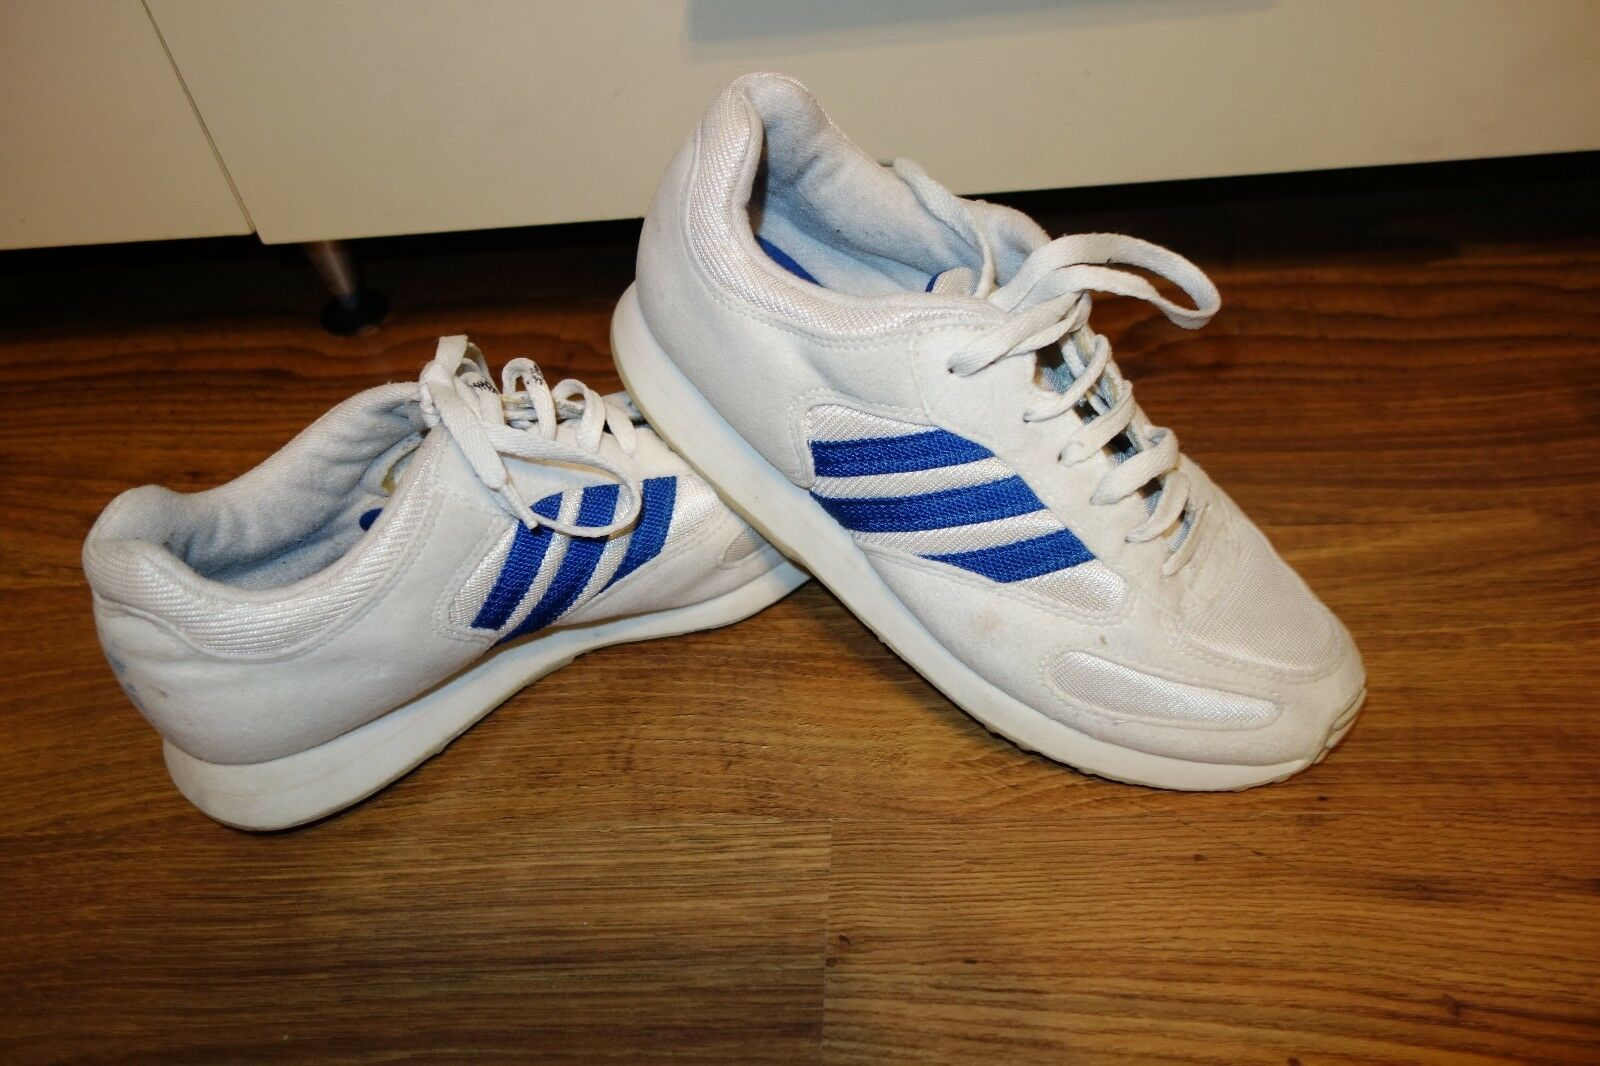 VINTAGE VERY RARE '90 ADIDAS STREET PL  , SIZE 6, VERY GOOD CONDITION